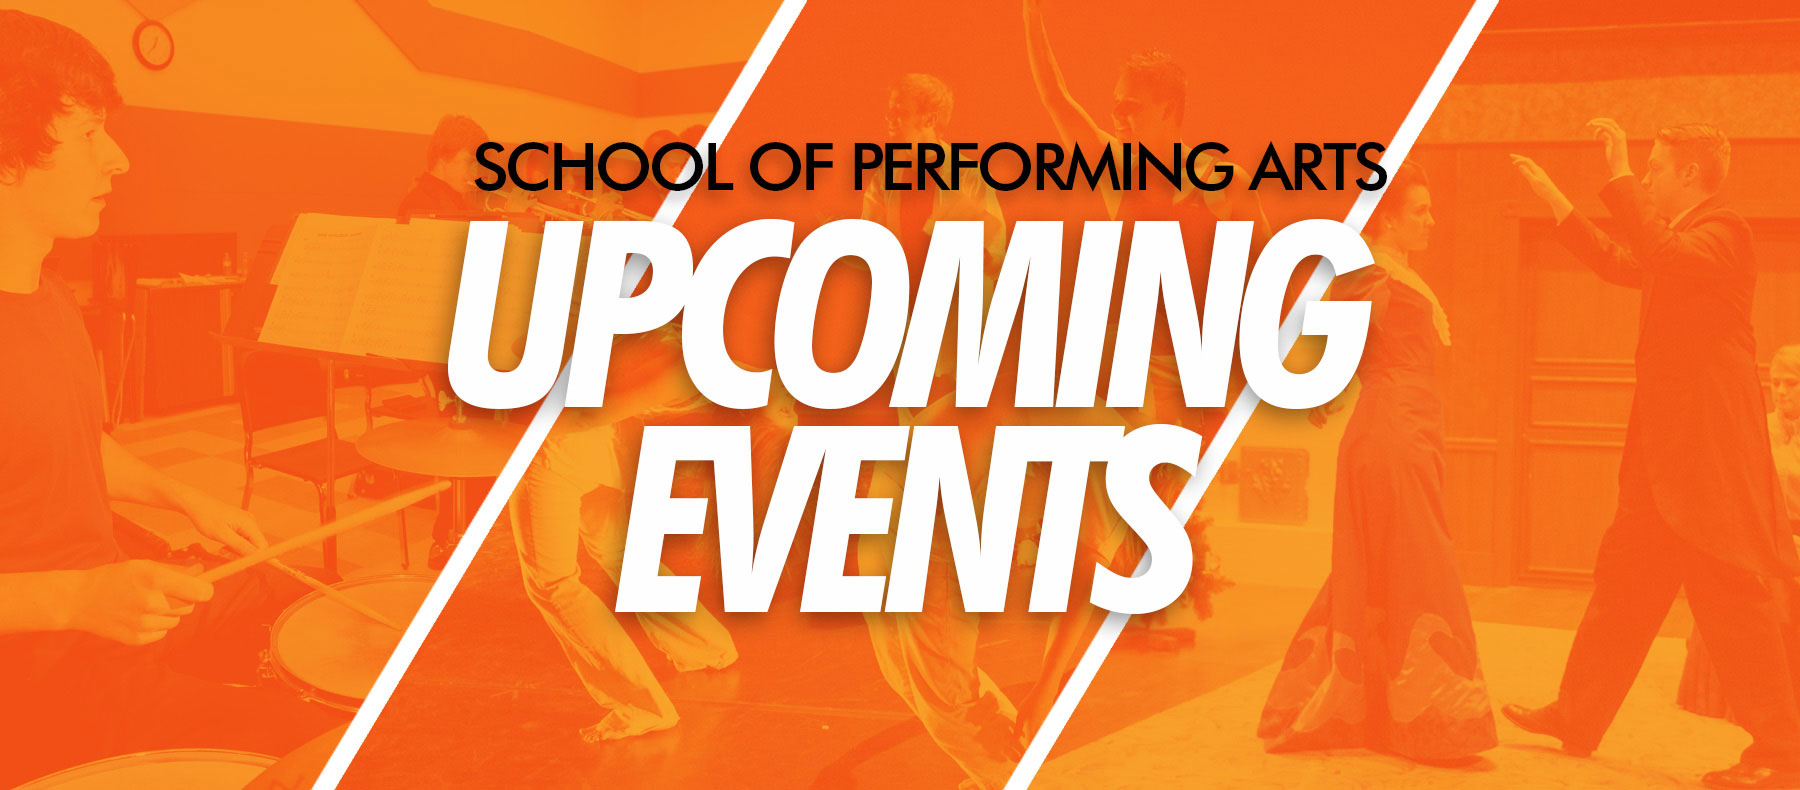 school of performing arts upcoming events